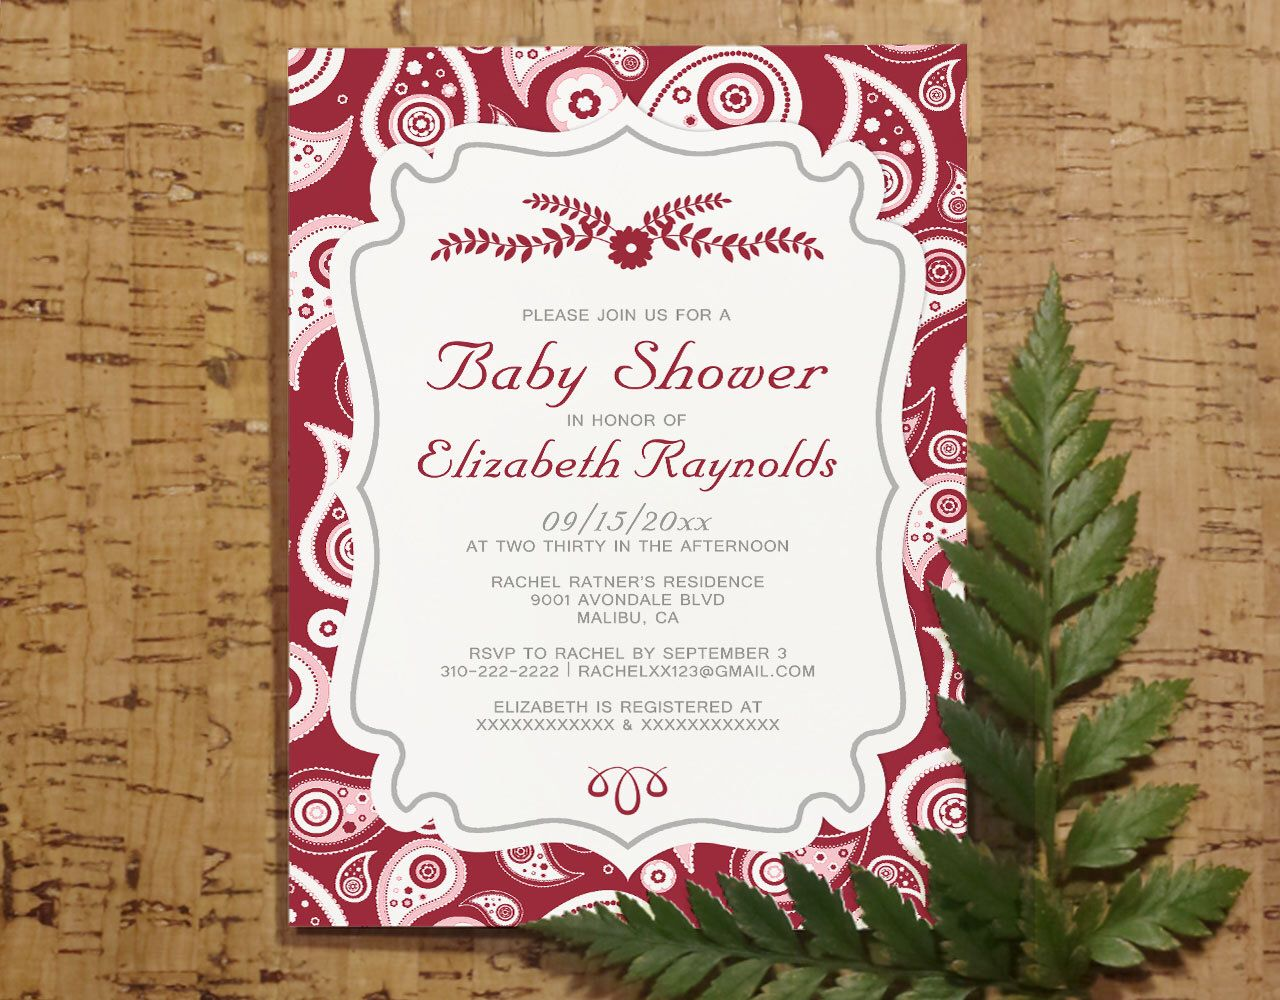 Paisley Indian Baby Shower Invitation Template Boy Girl Baby Shower